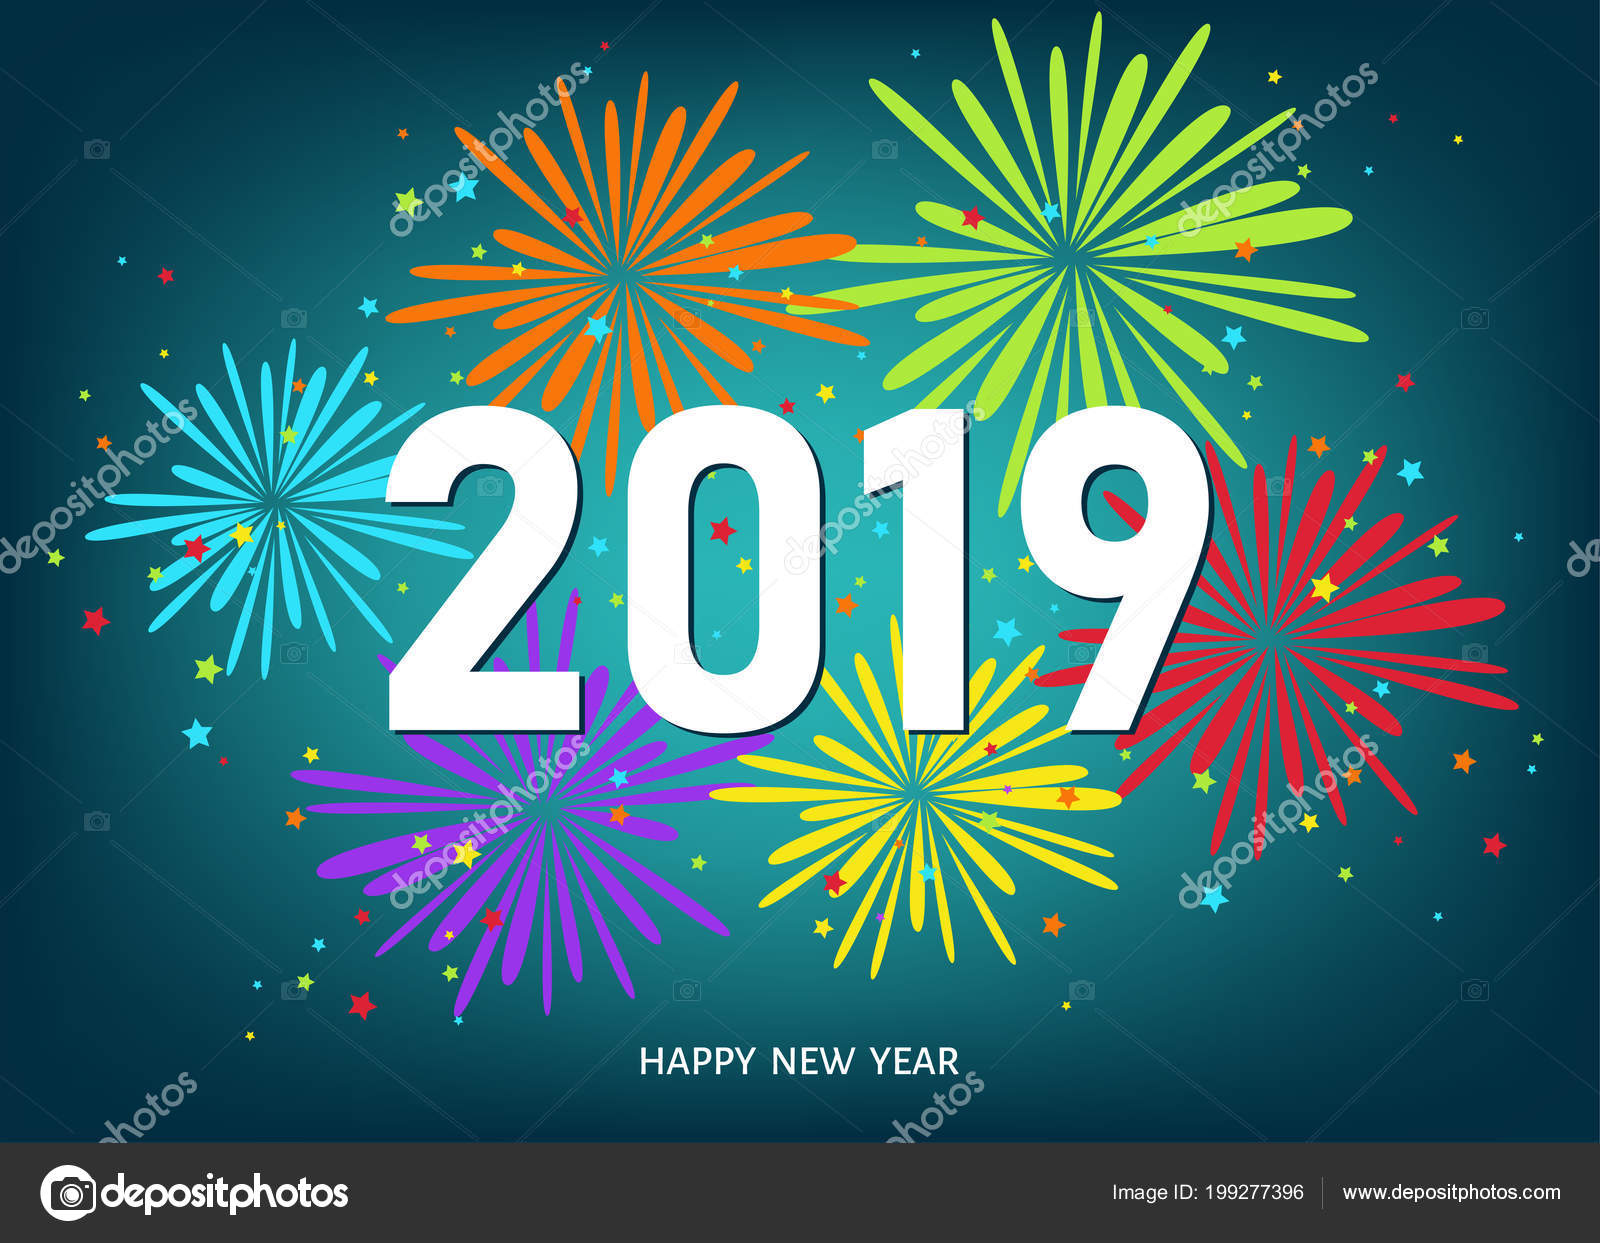 2019 happy new year greeting card blue background colorful fireworks stock vector